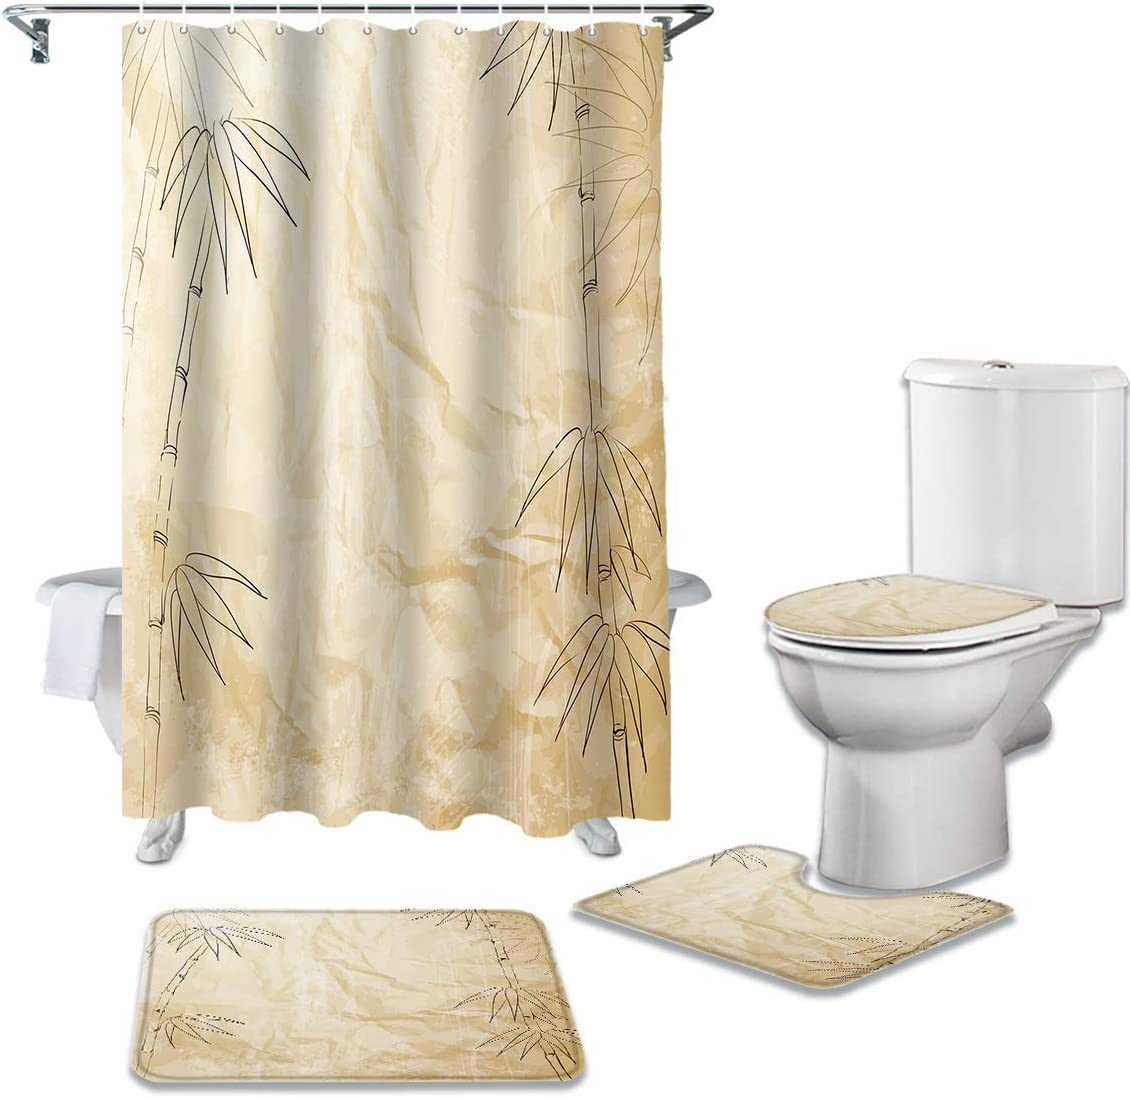 CHARMHOME 4 Cheap sale Piece Shower Tucson Mall Curtain with Non-Slip Rug Sets Toilet